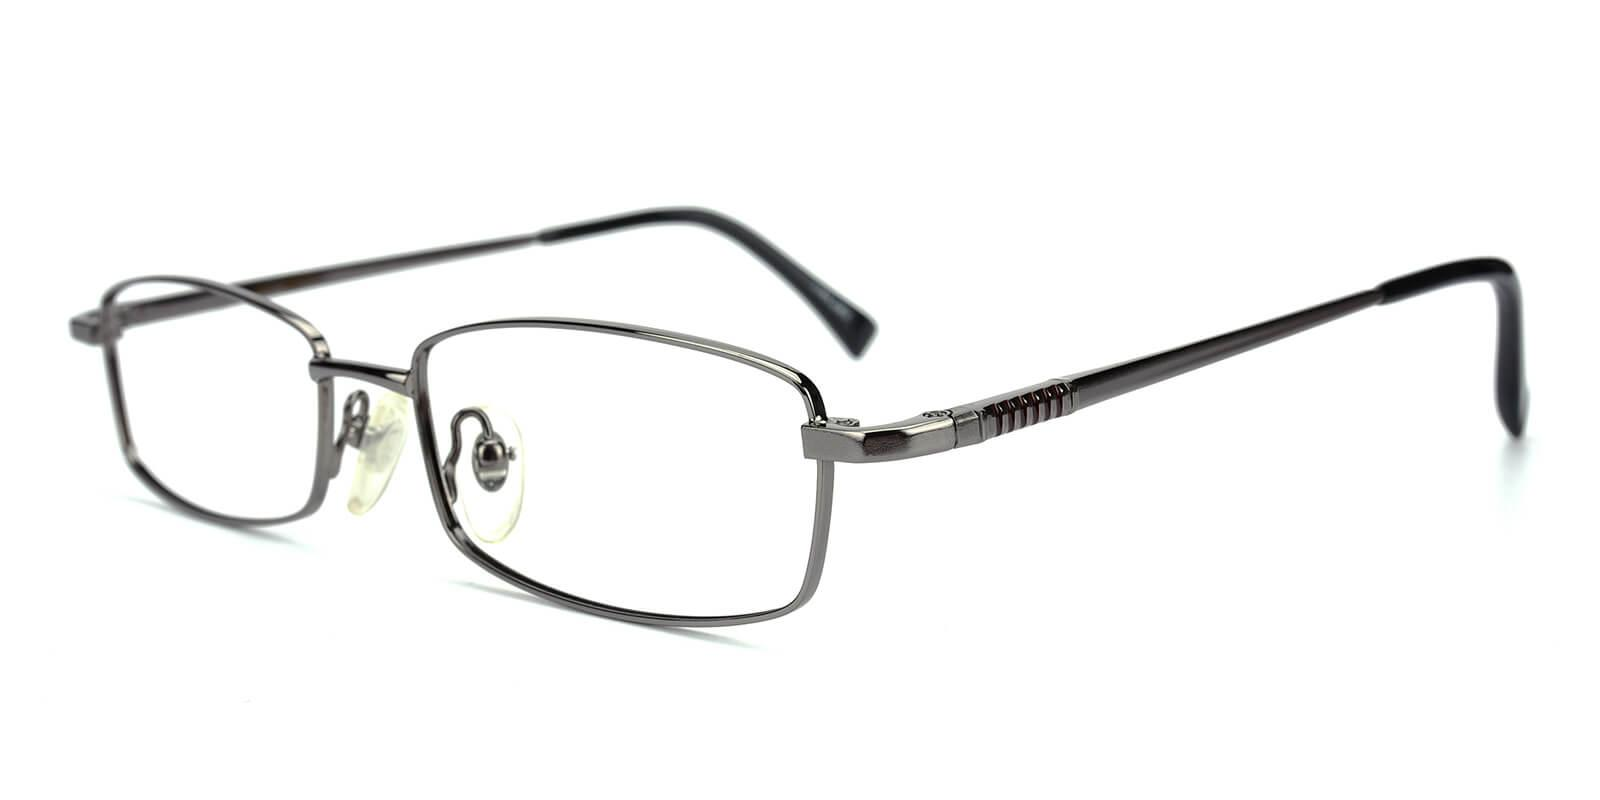 Chistopol-Gun-Rectangle-Metal-Eyeglasses-additional1